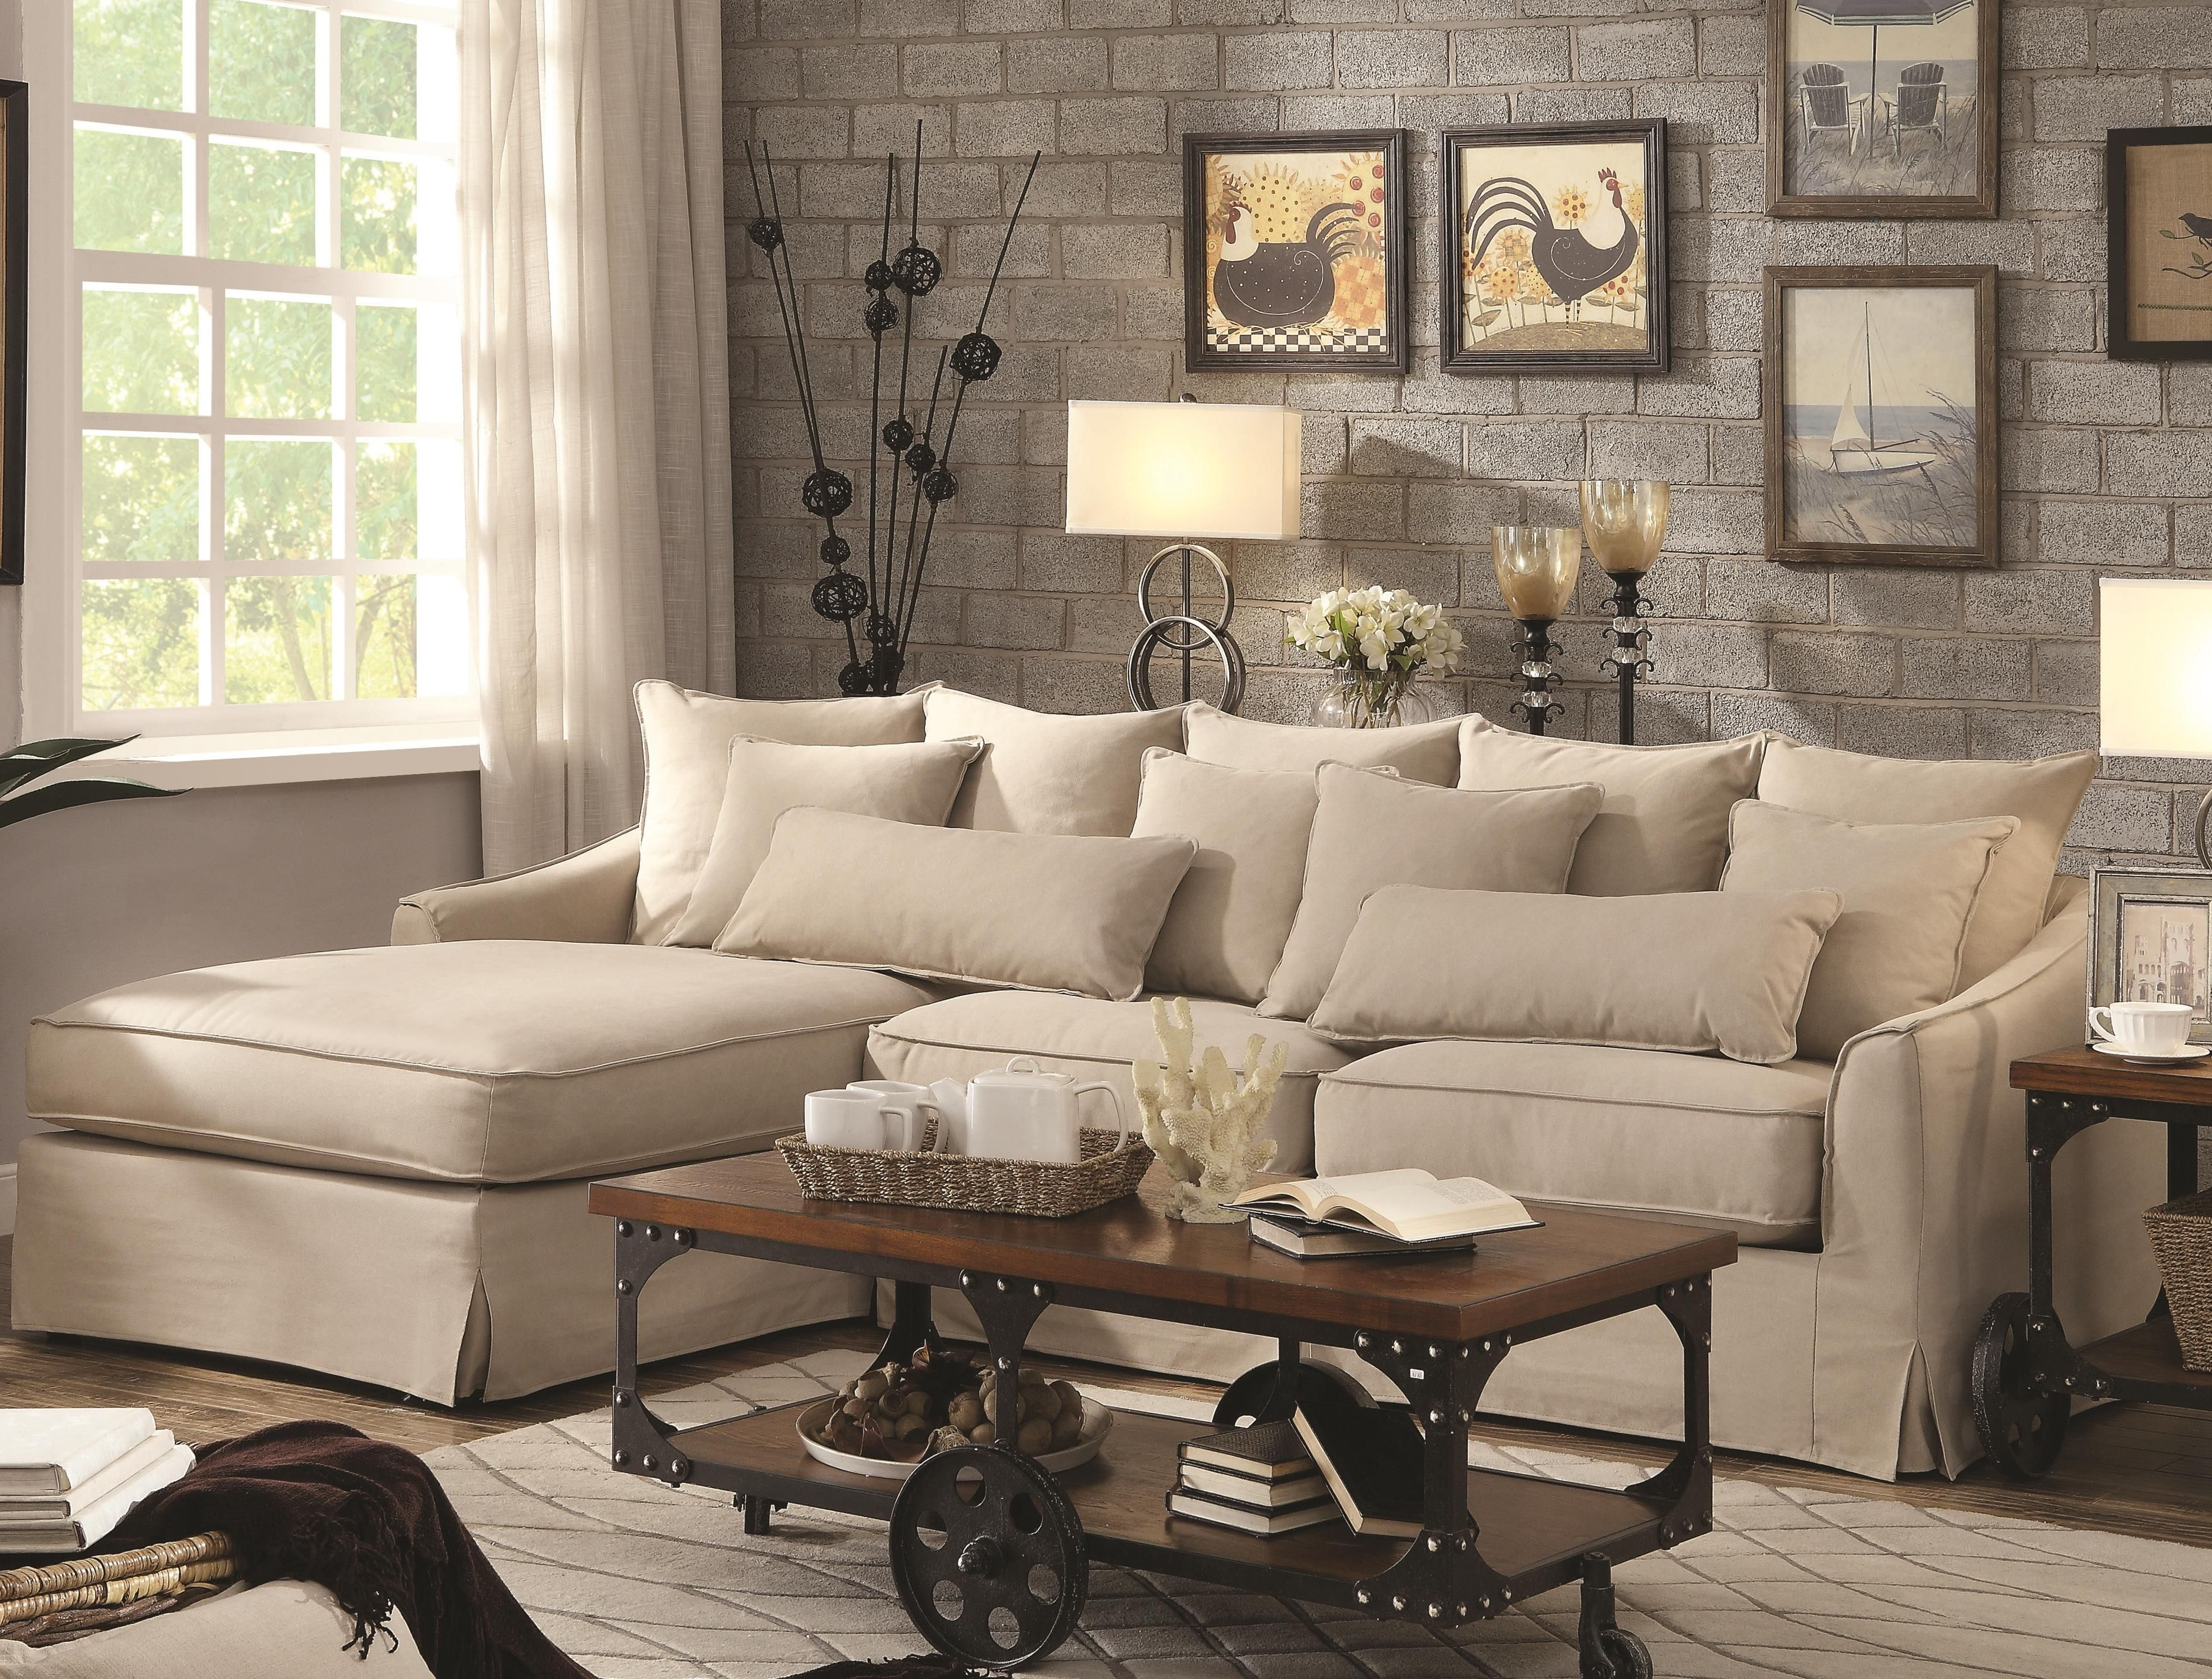 Best And Newest Coaster Knottley Slipcovered Sectional Sofa With Chaise And Inside Beige Sectionals With Chaise (View 7 of 15)